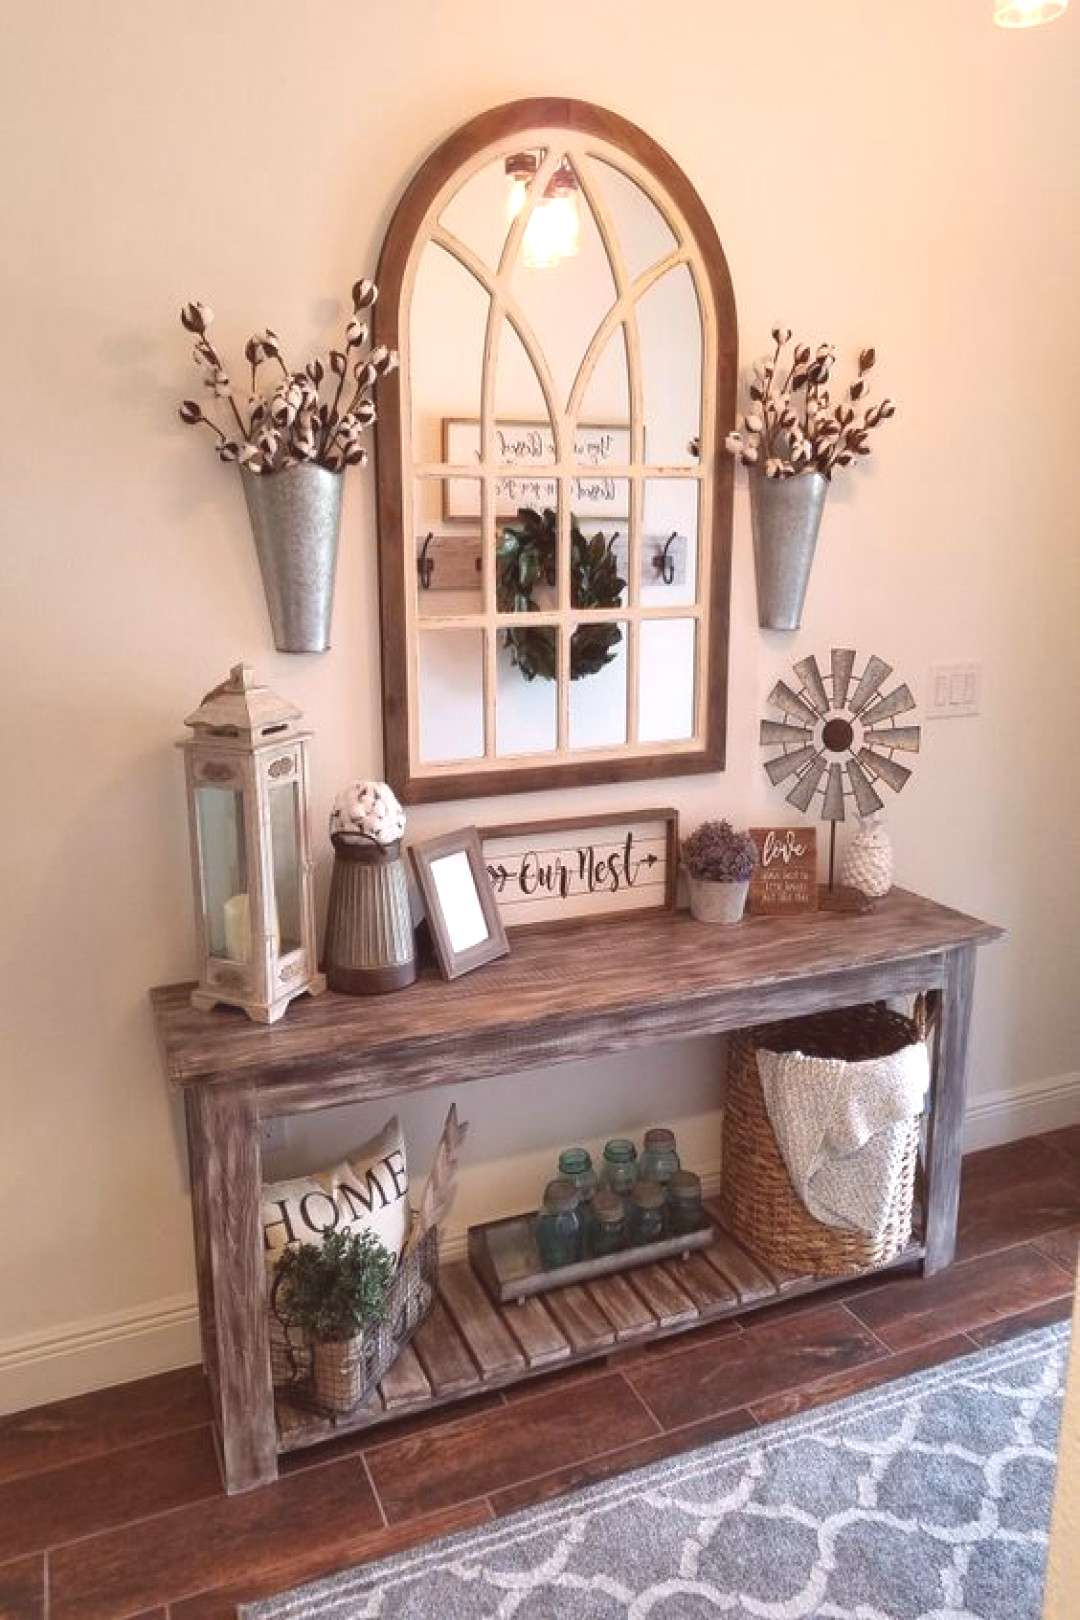 The Farmhouse Decor Looking to transform your home into a rustic retreat? Take a look at our 50+ f